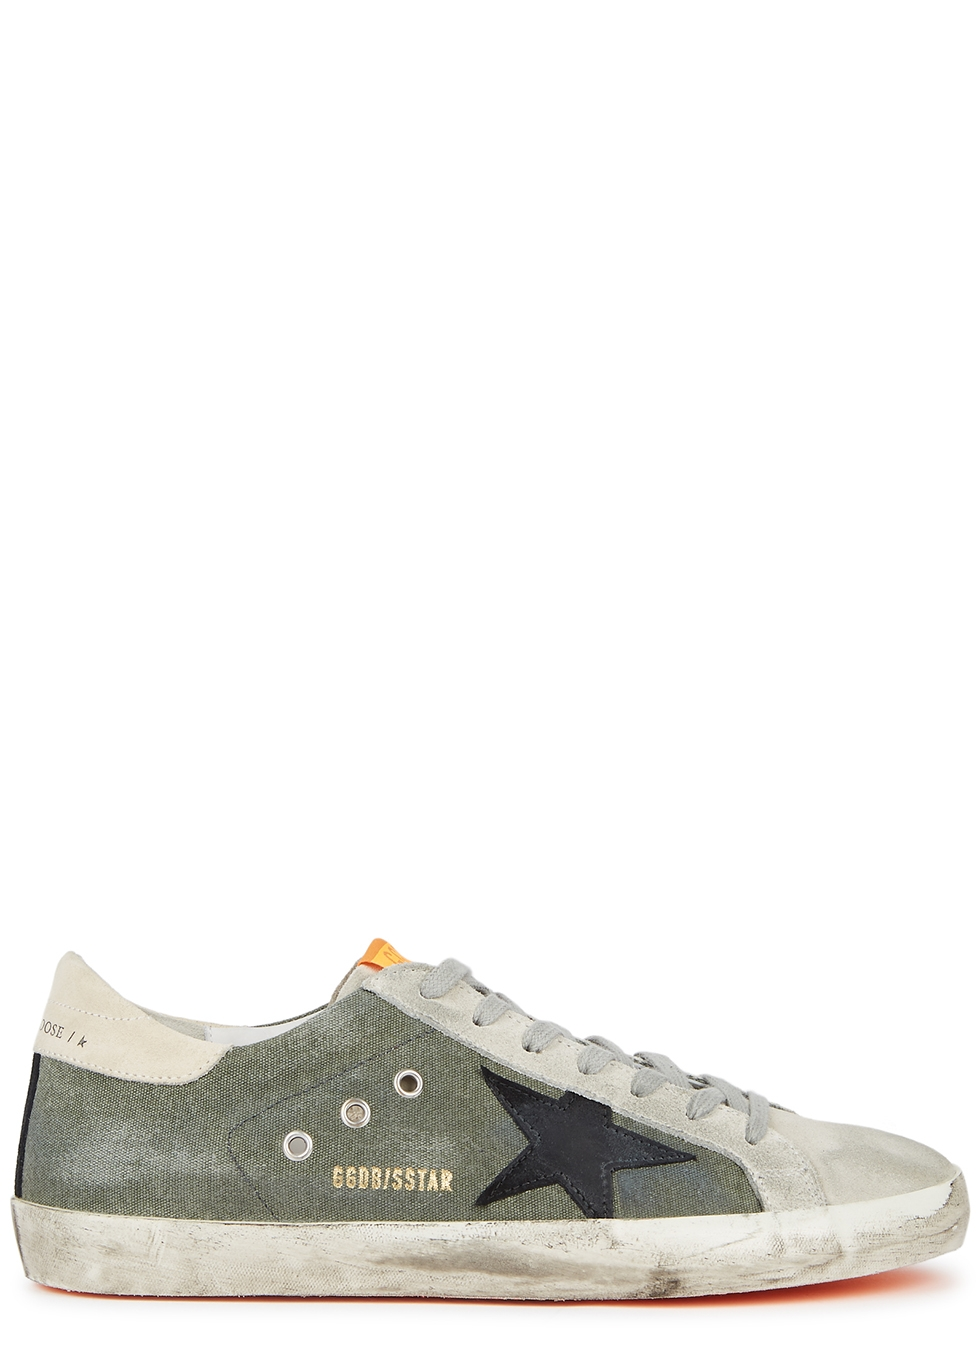 Superstar distressed canvas and suede sneakers